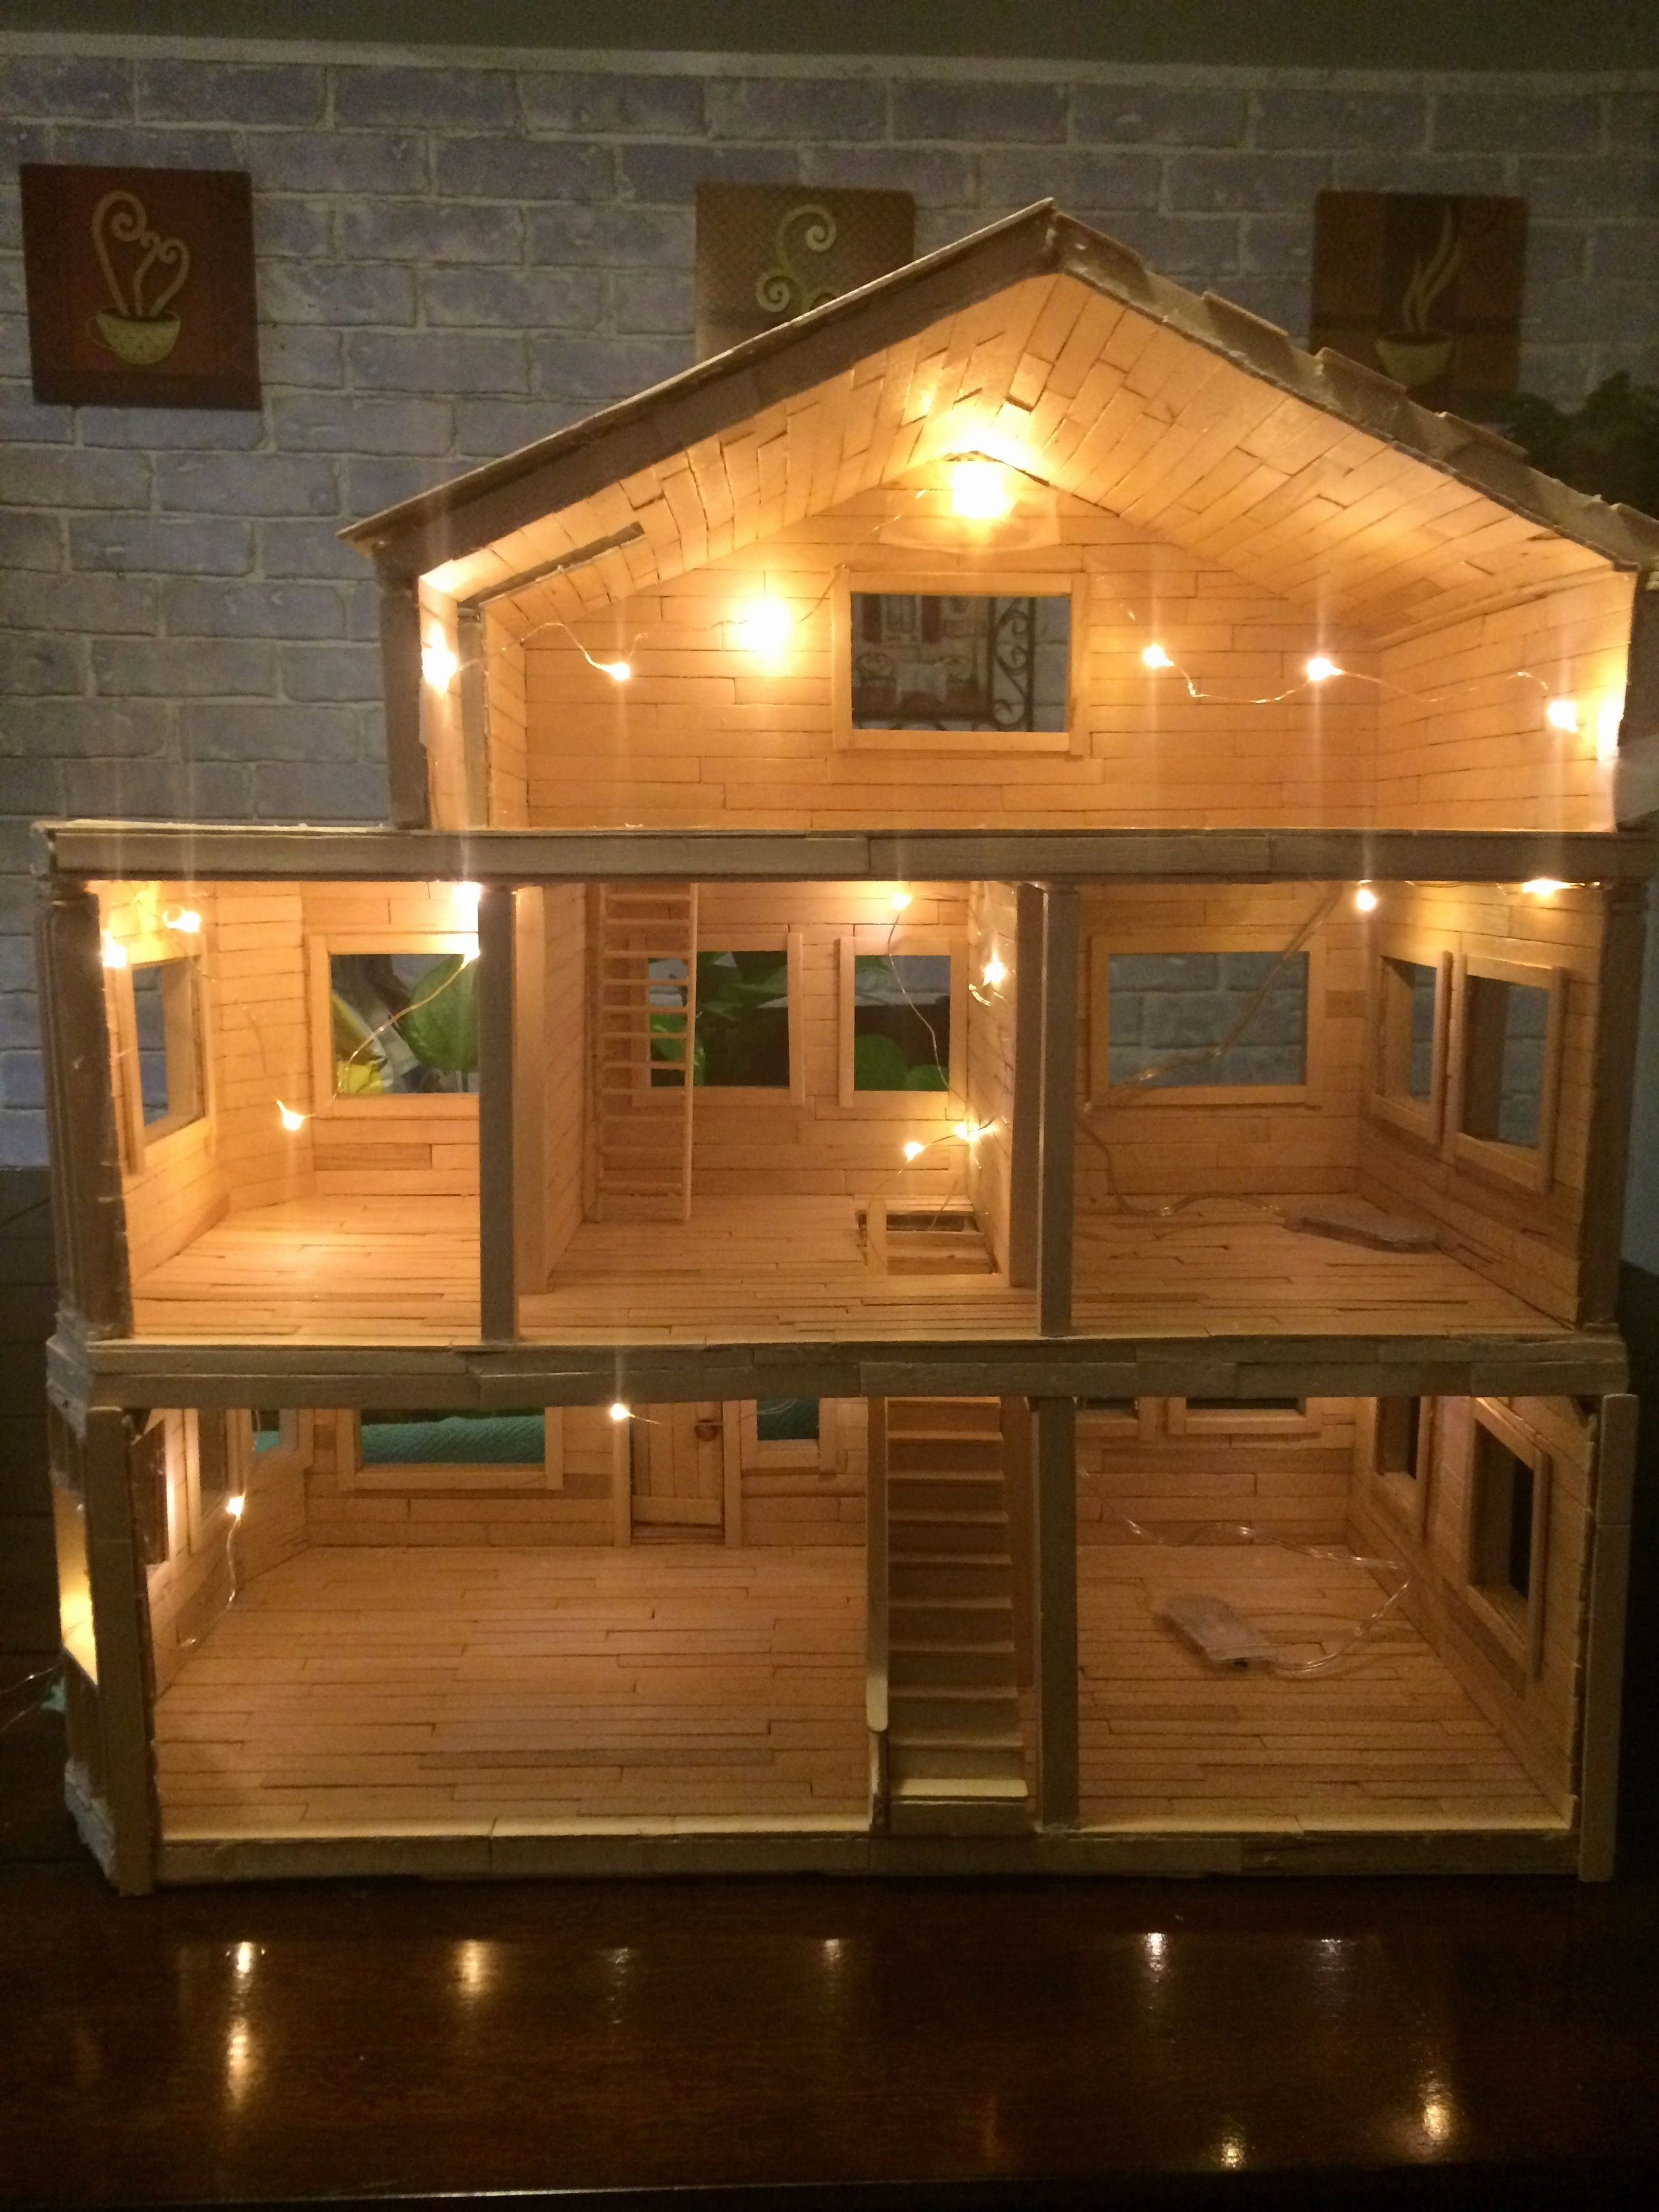 Dollhouse Made Entirely From Popsicle Sticks Dollhouse New Diy Dollhouse Plans Doll House Plans Barbie Doll House Popsicle Stick Houses